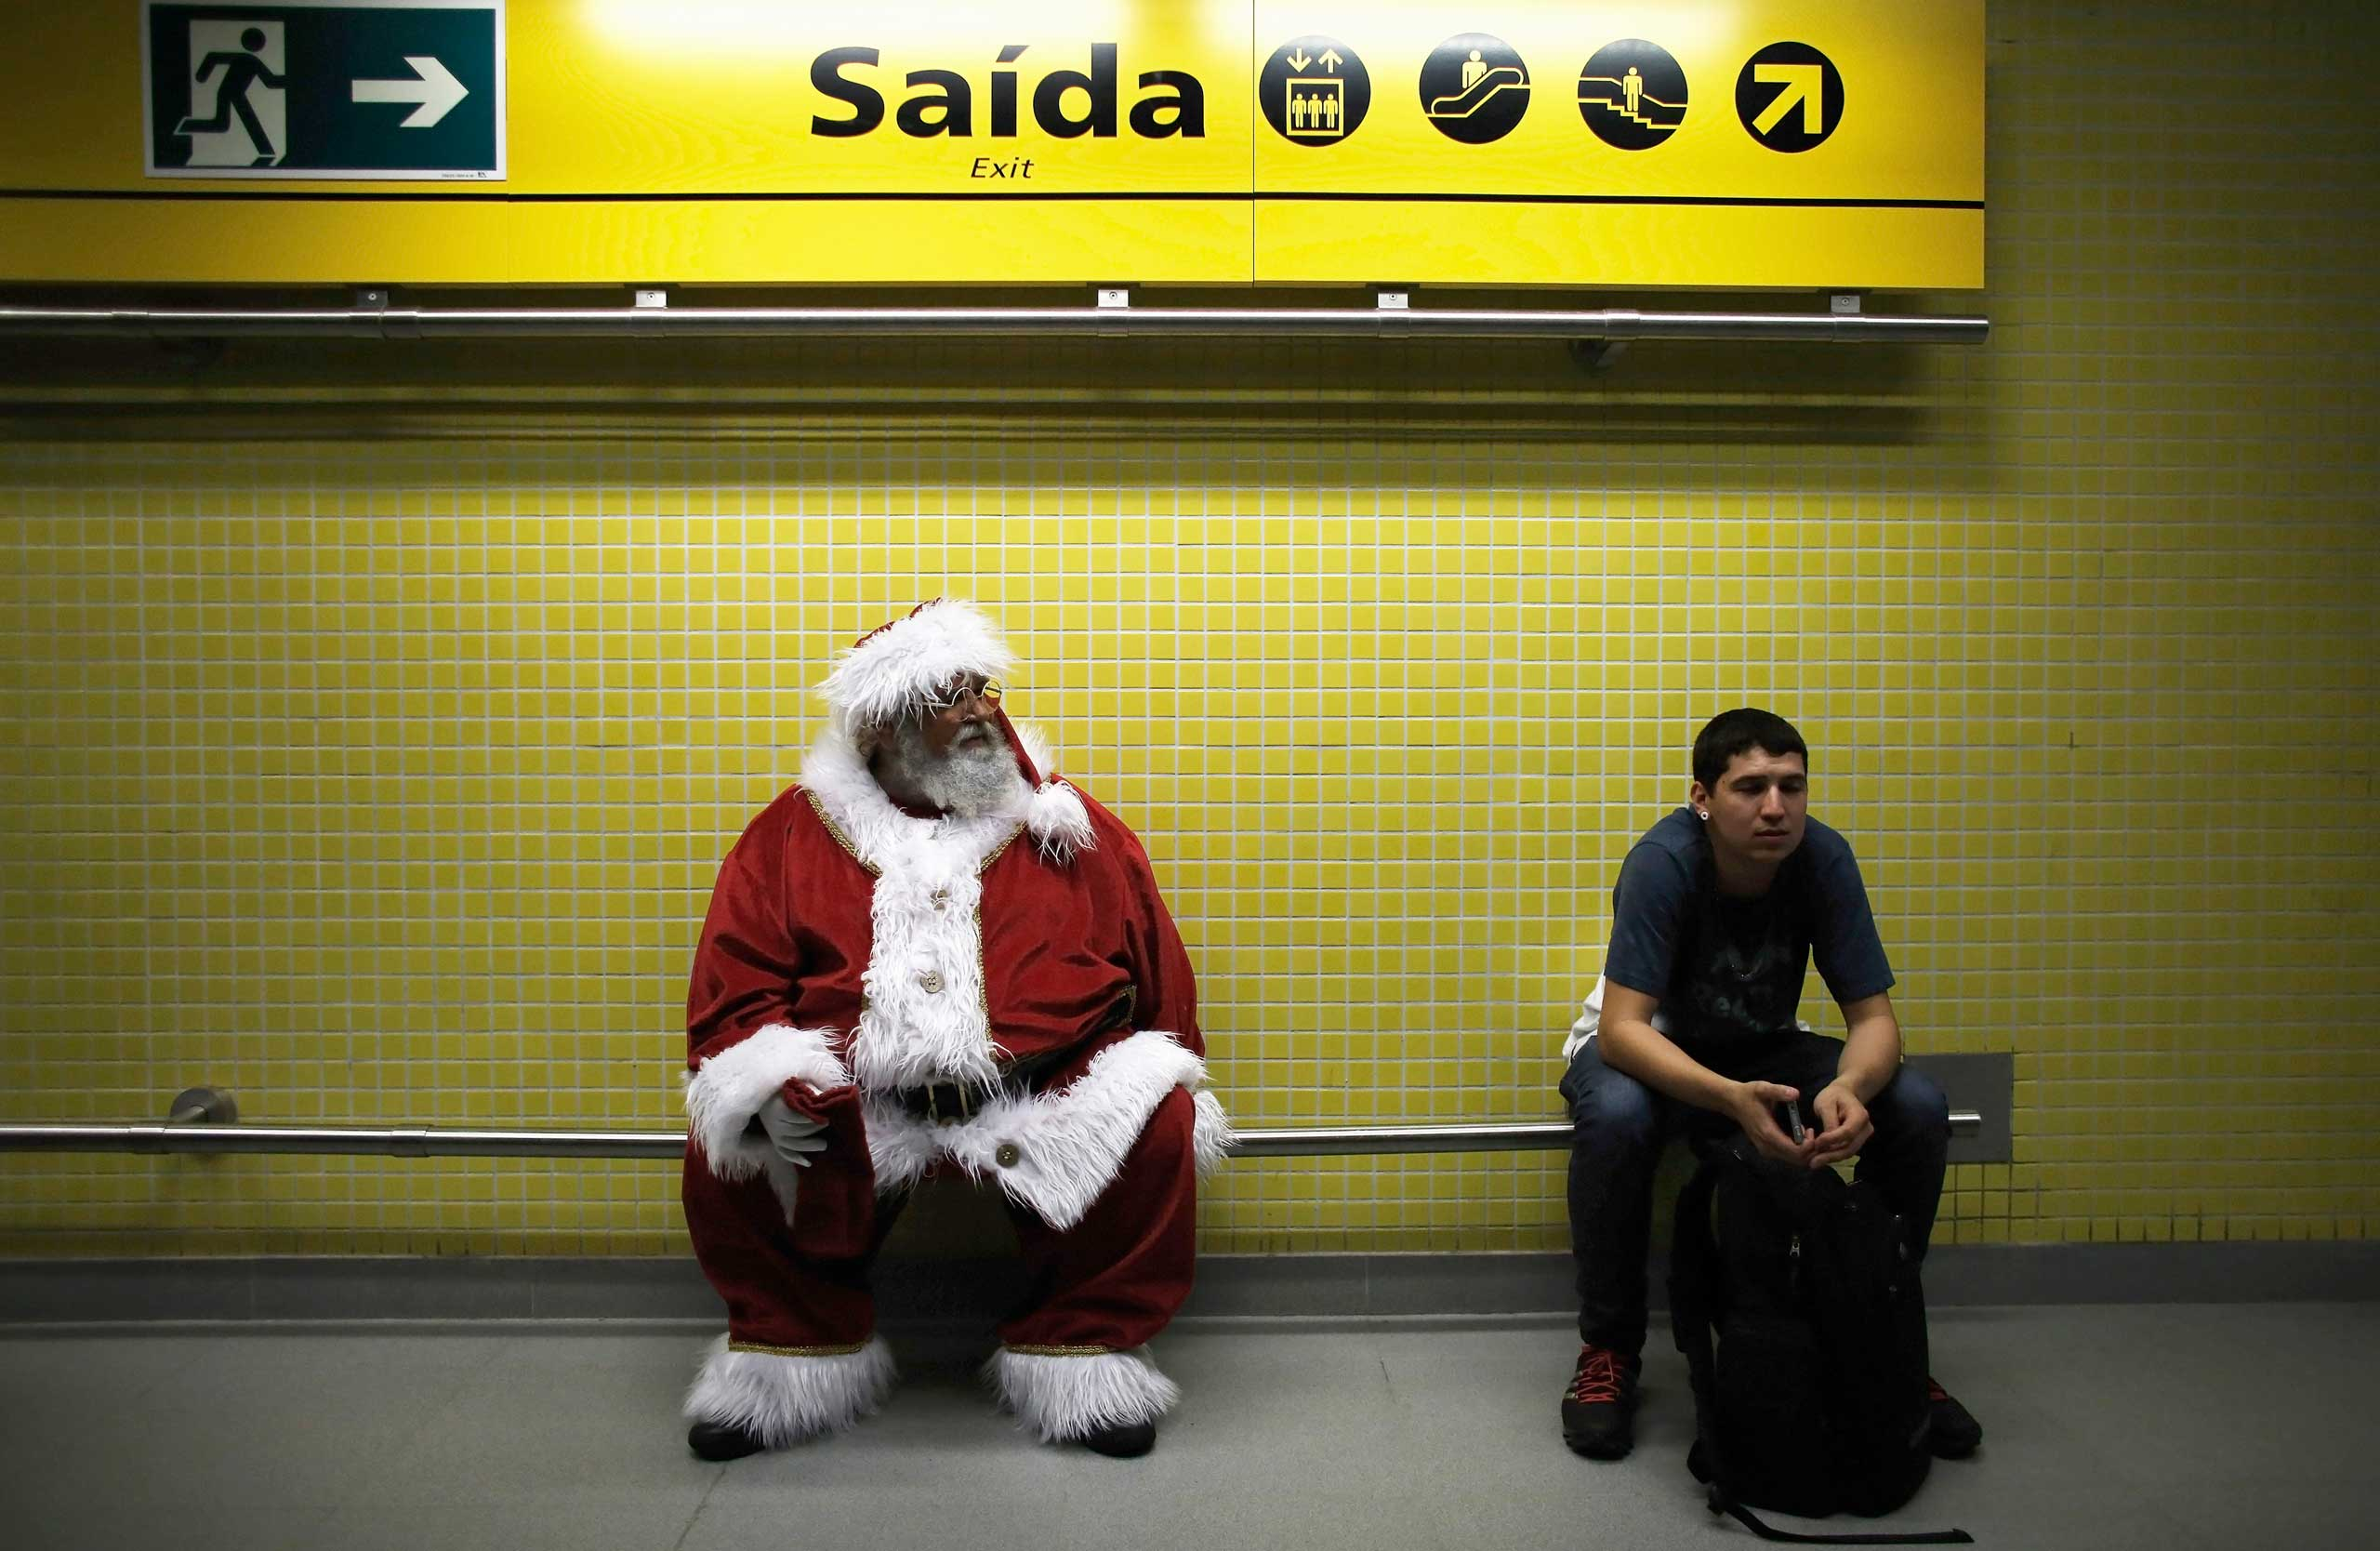 A man dressed as Santa Claus waits to board a train at a subway station in Sao Paulo on Dec. 12, 2014.